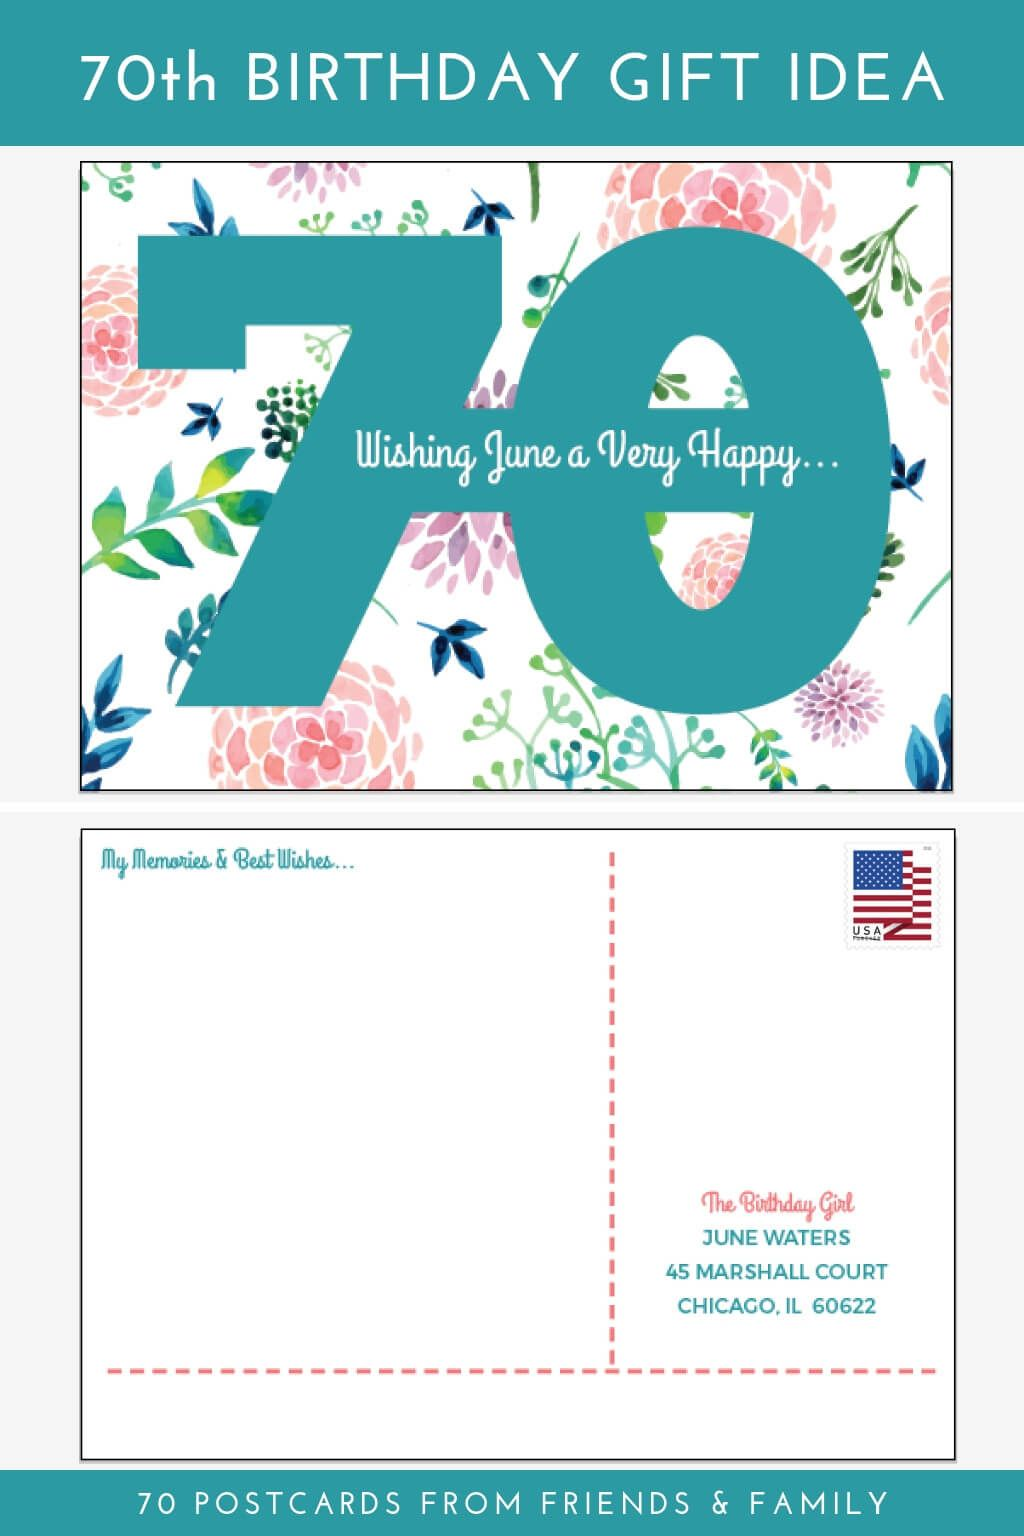 70th Birthday Gift Idea 70 Postcards From Friends And Family Order These Personalized Have Mail Best Wishes Fond